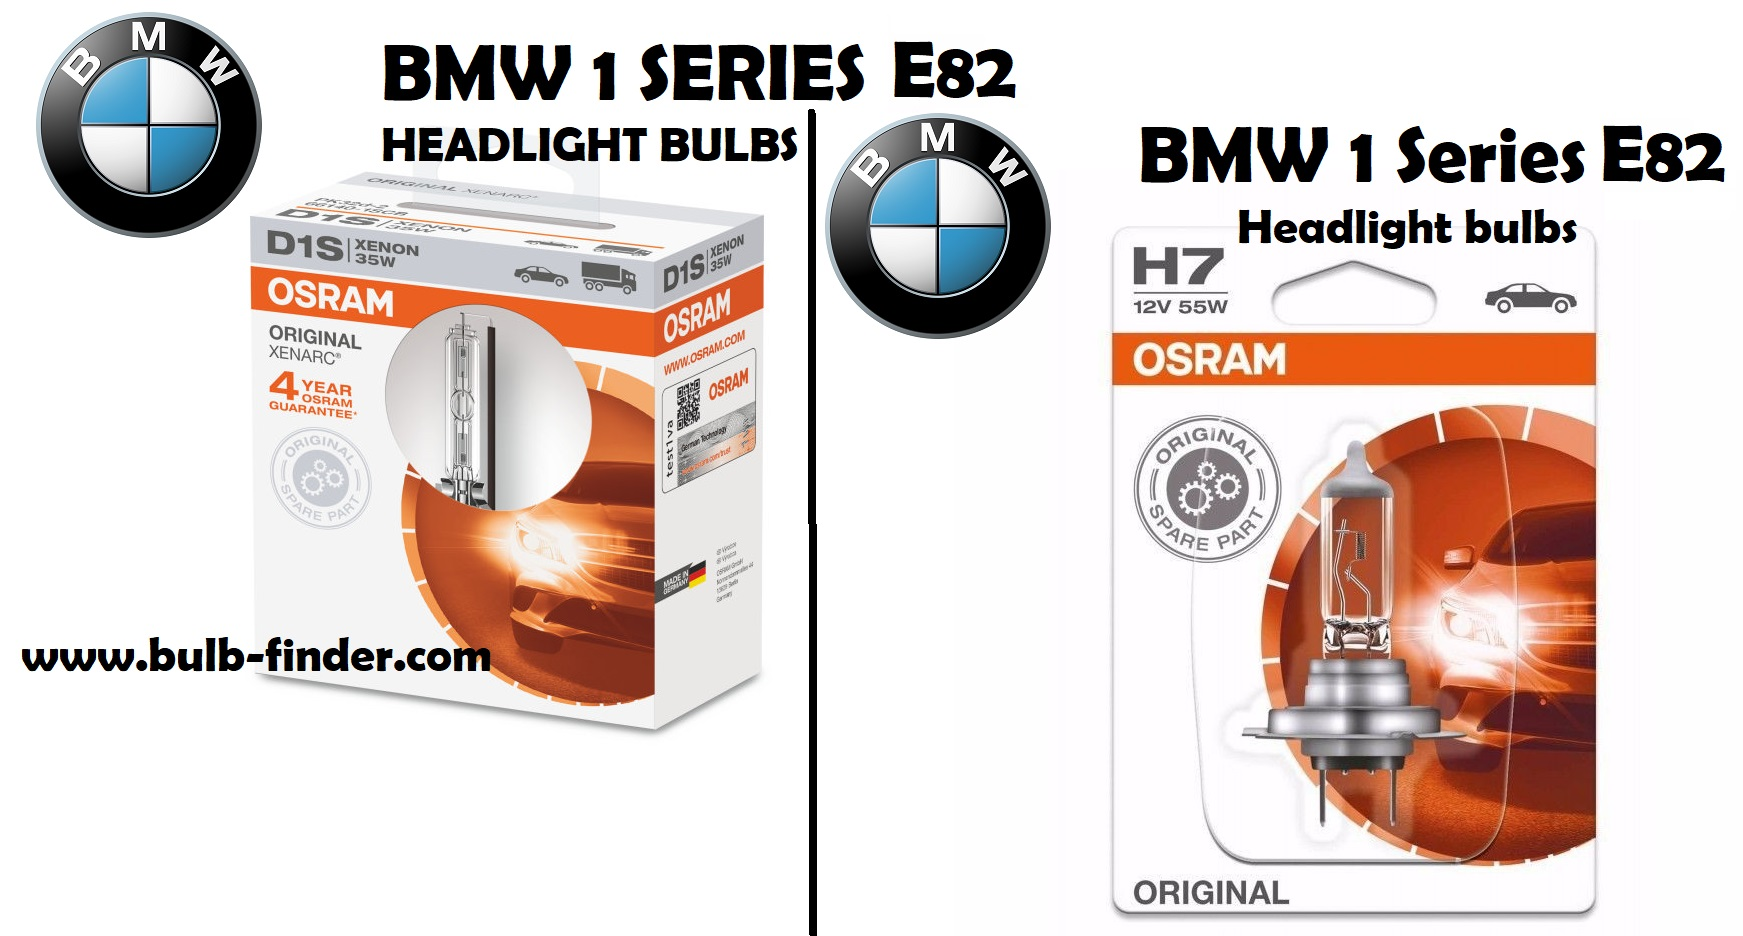 BMW 1 Series E82 headlight bulbs type